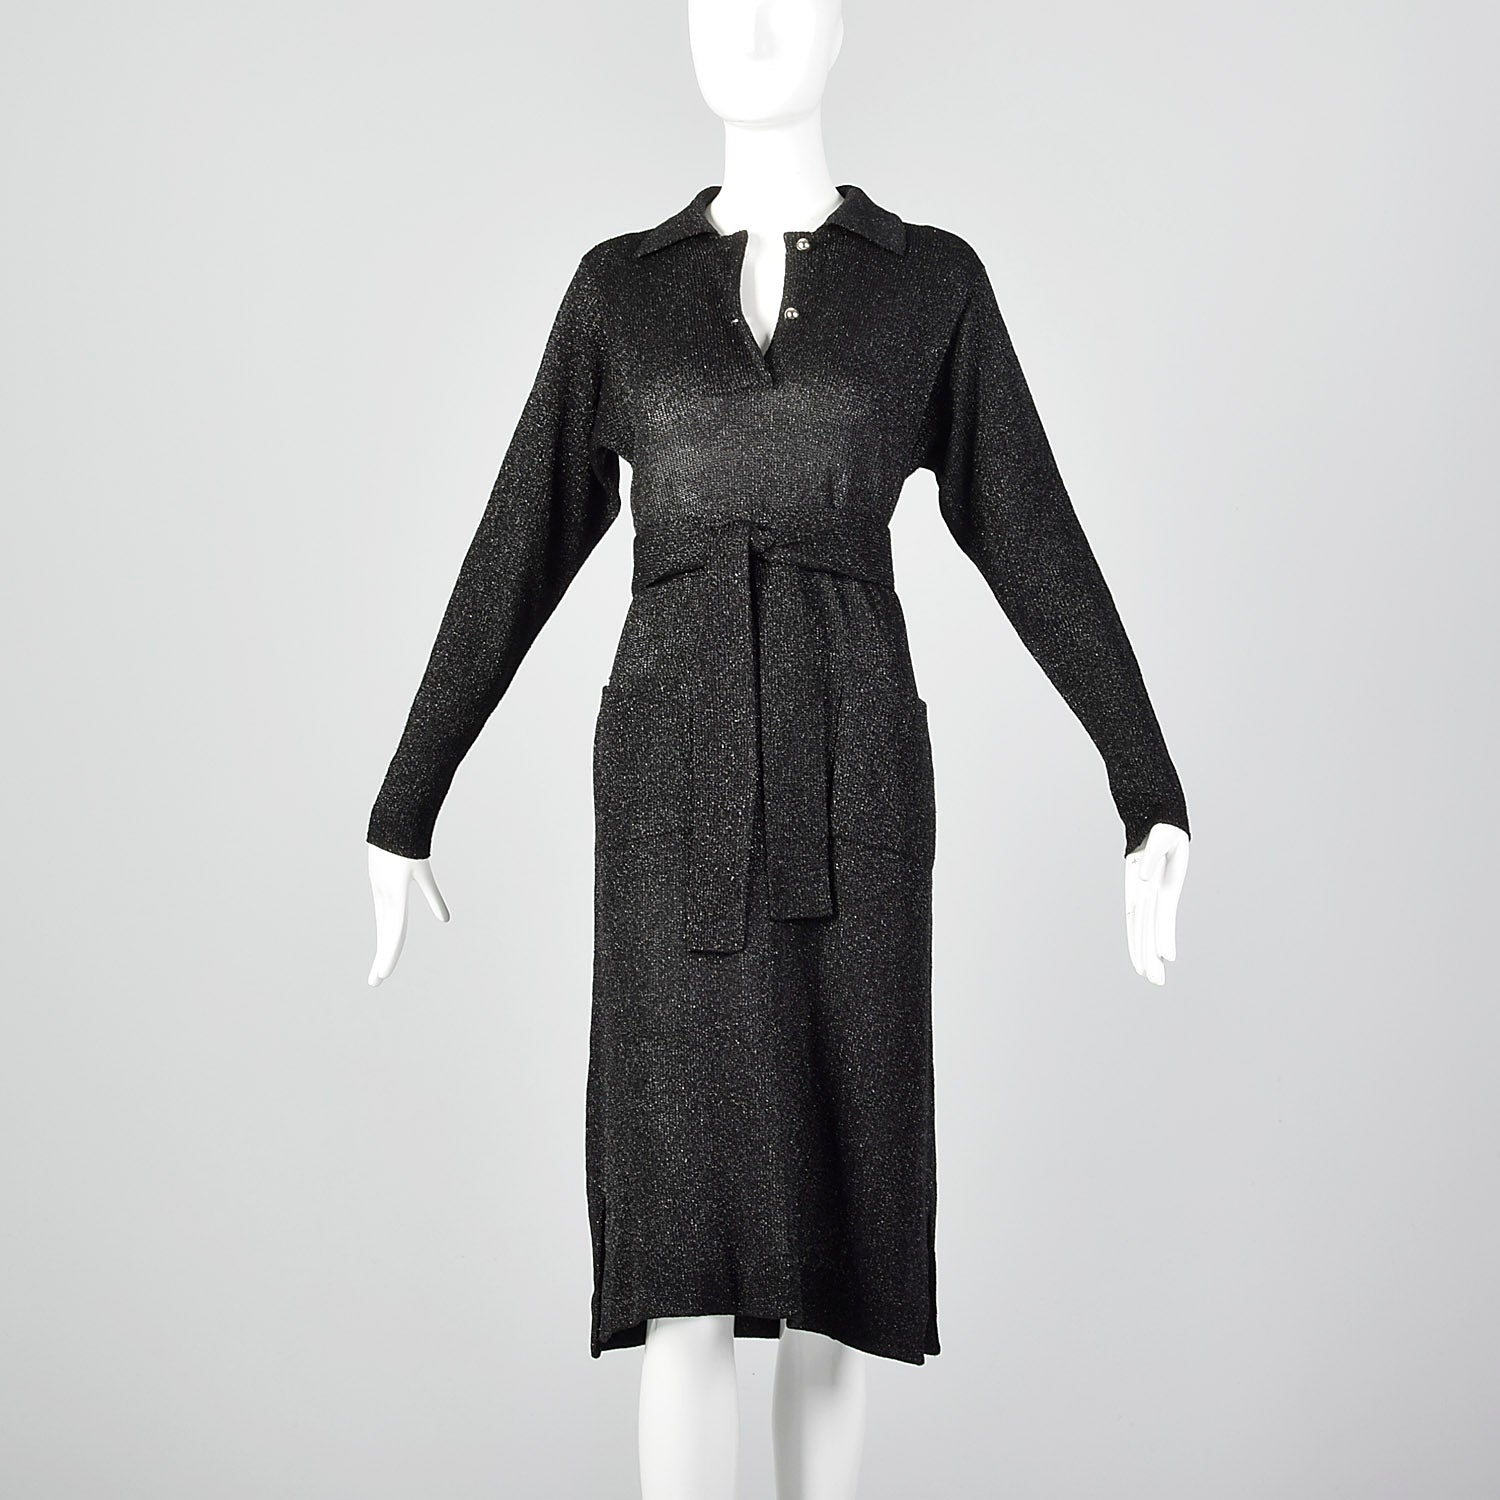 Large 1970s Black Lurex Knit Dress